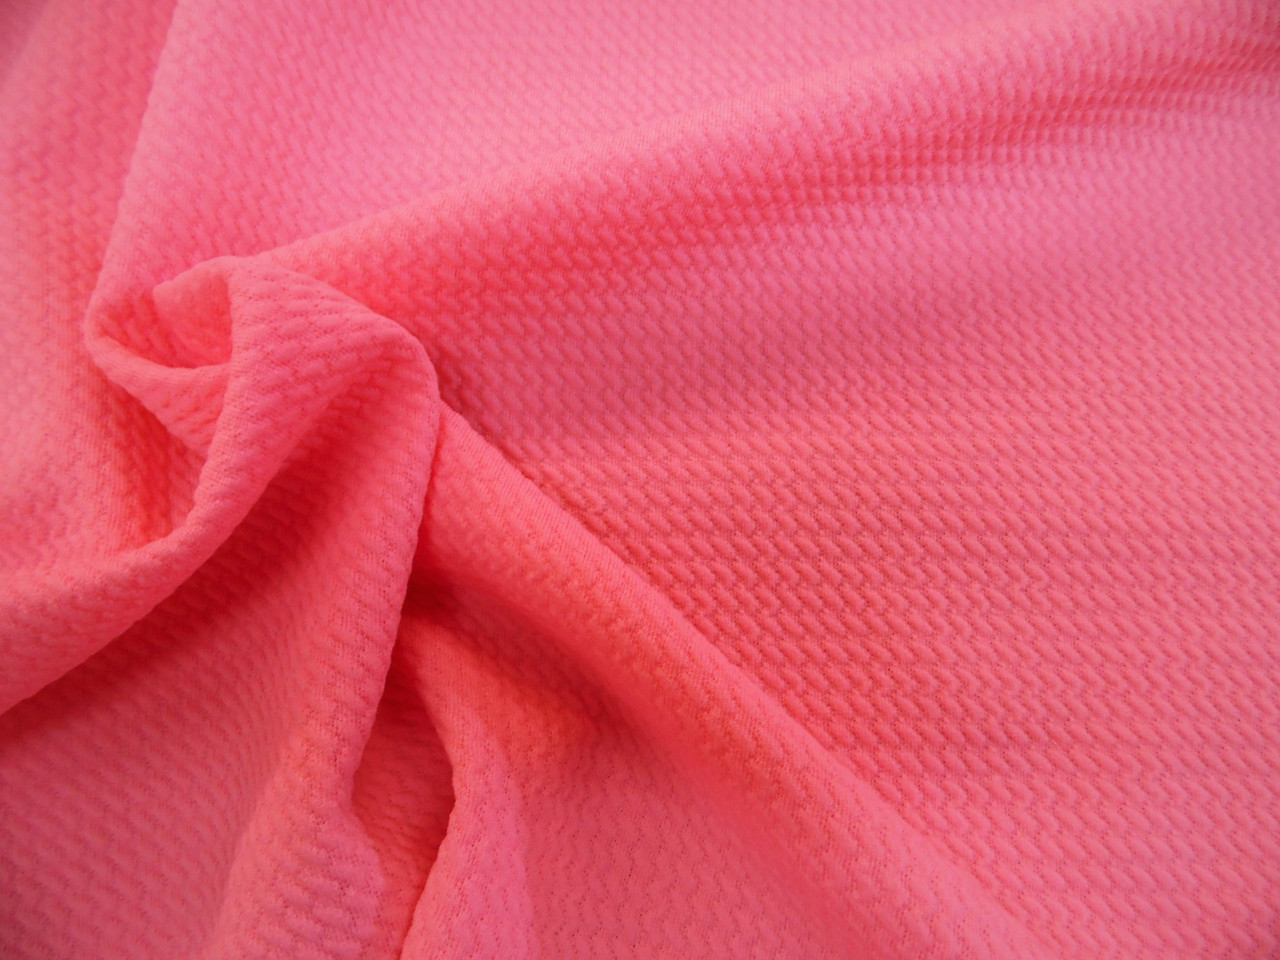 a305e24b7c Bullet Textured Liverpool Fabric 4 way Stretch Rose Pink -Designer ...